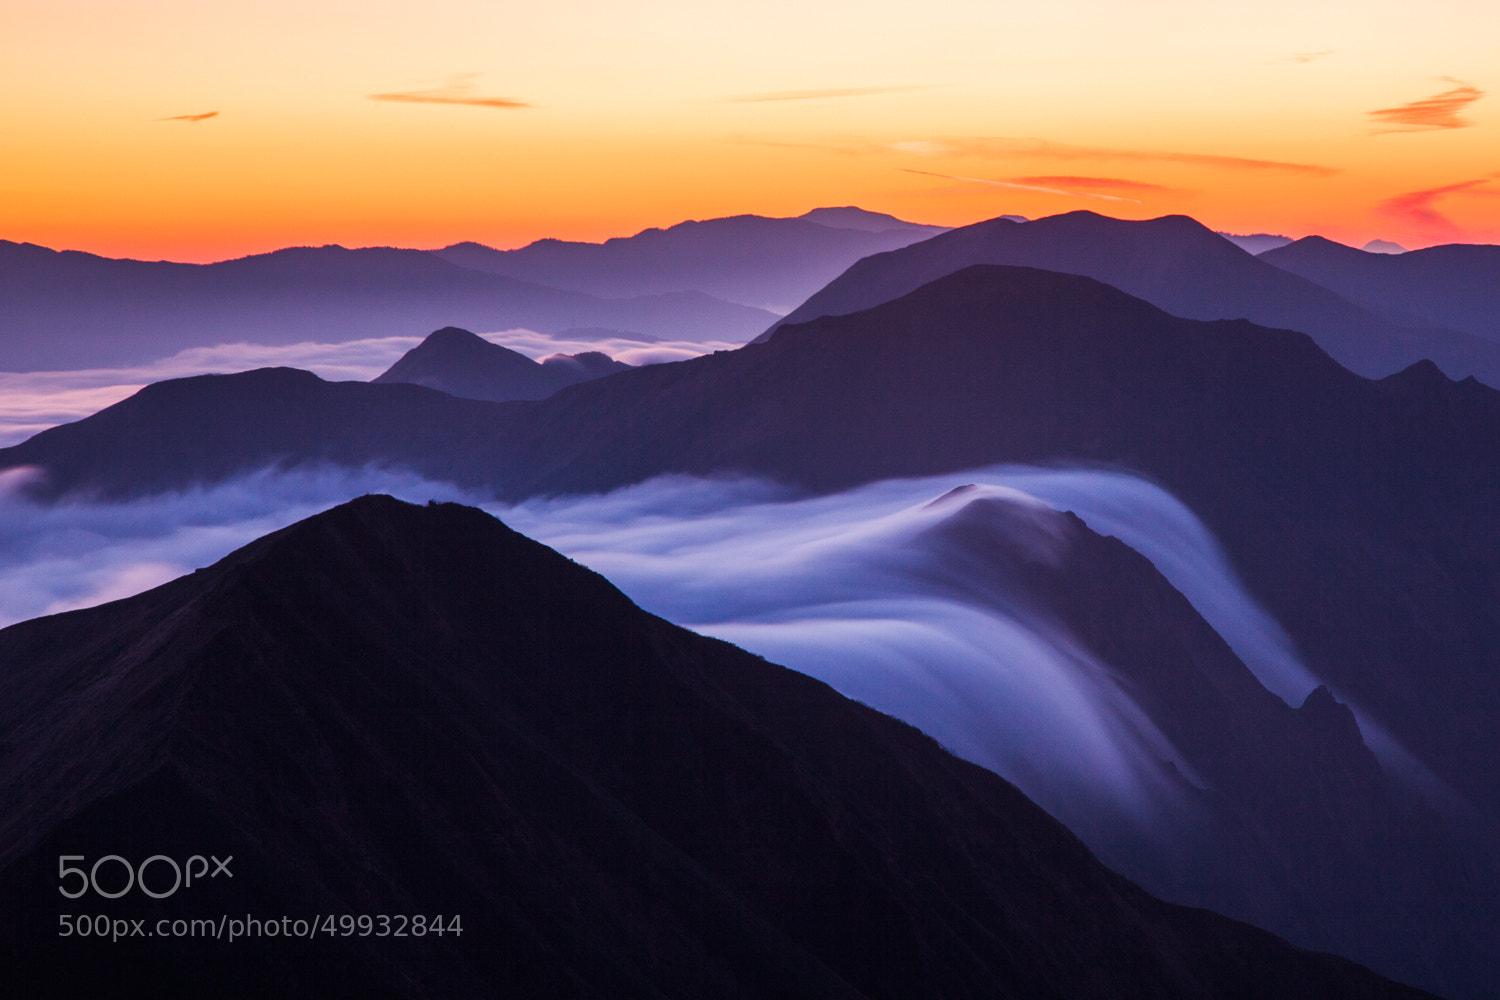 Photograph The Cloud Flows by Noriko Tabuchi on 500px